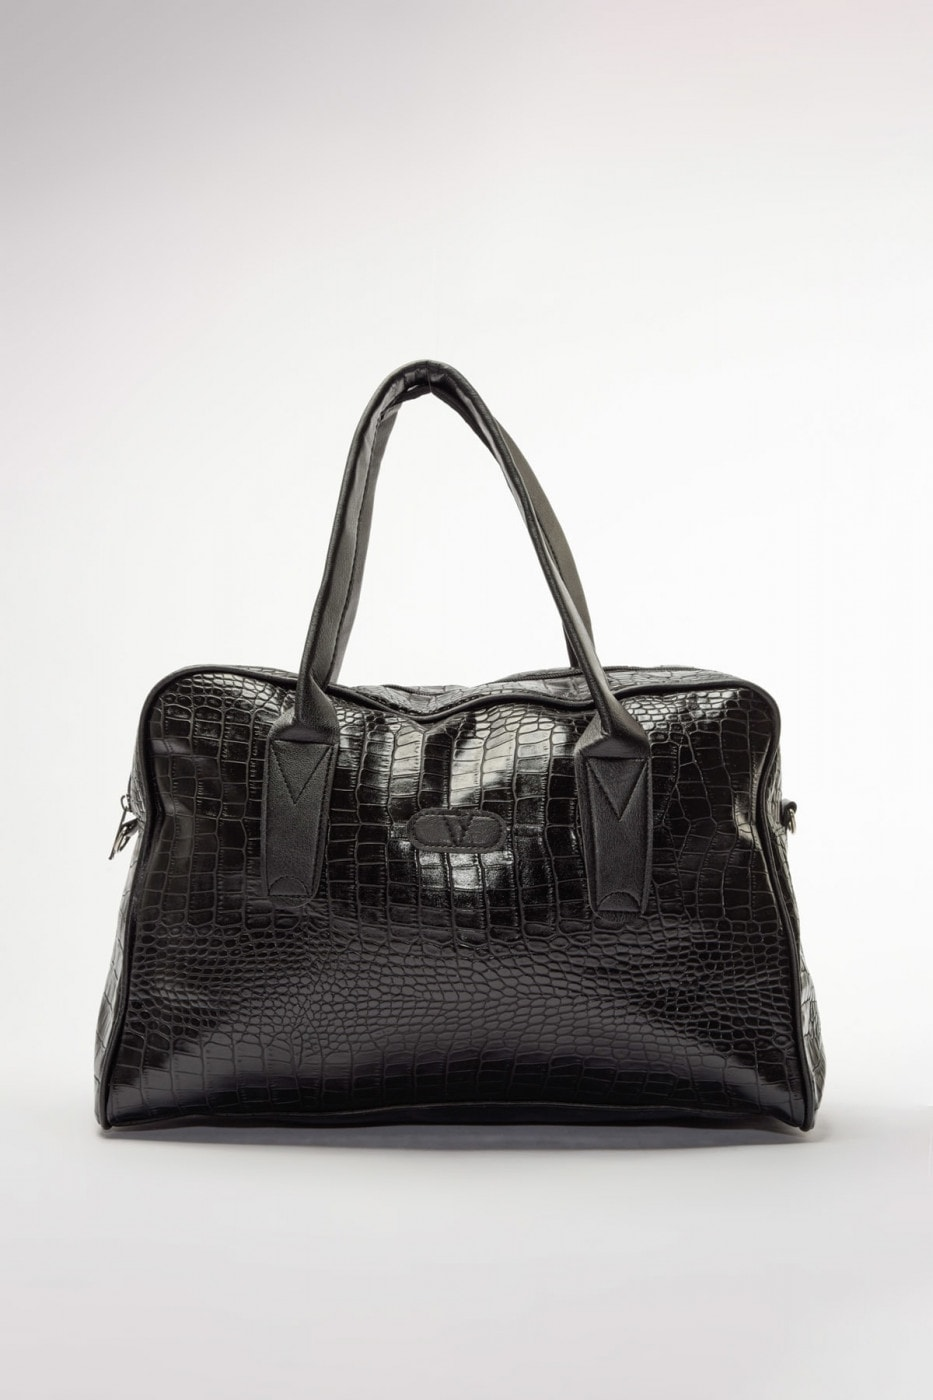 Women's bag Trendyol Kroko